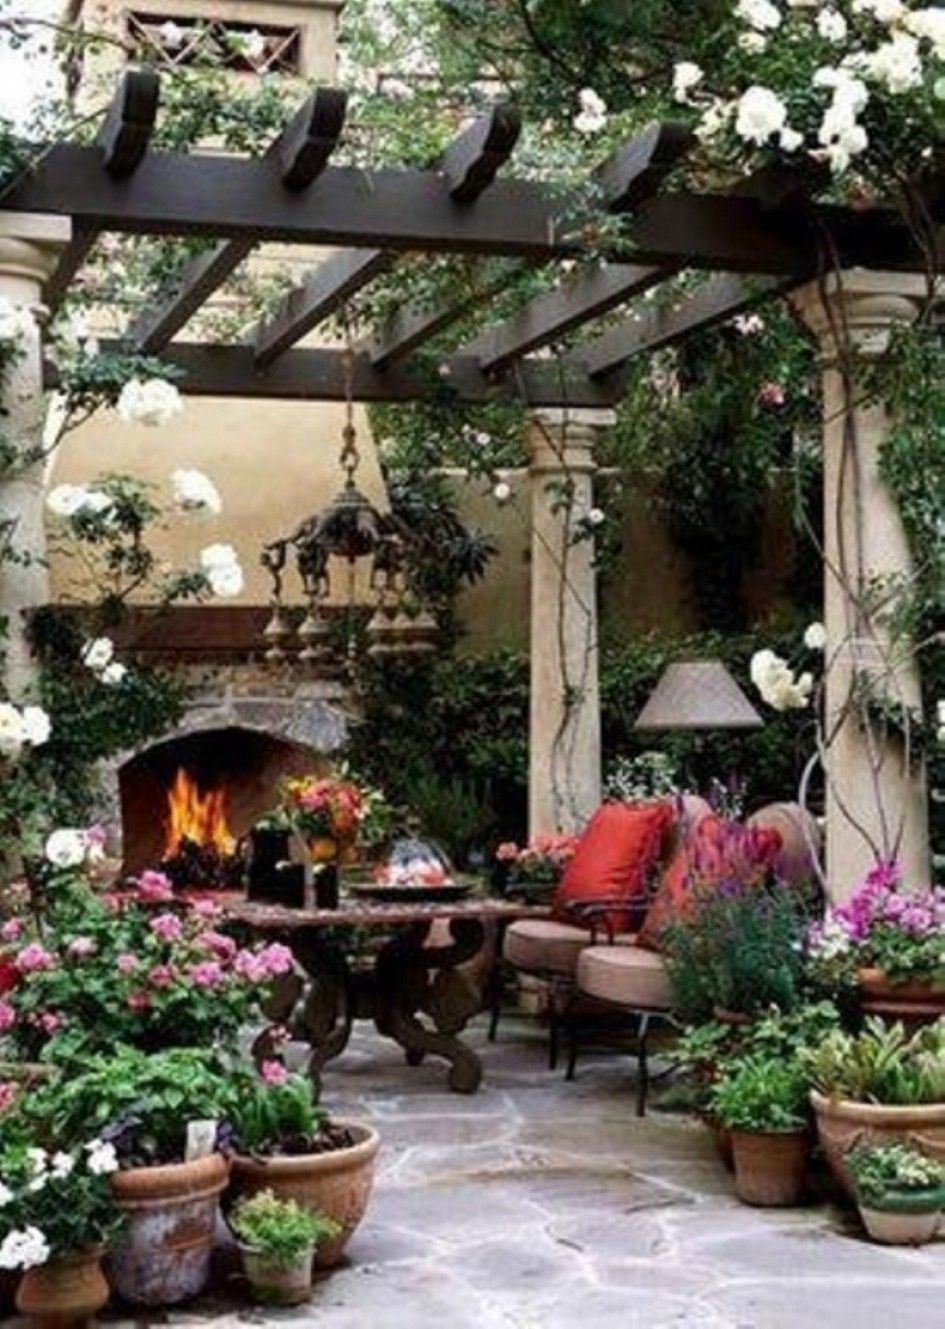 Patio decorating ideas with flowers - Exterior Vintage Terrace Decorations Antique Outdoor Furniture Red Throw Pillows Colorful Potted Flowers Beautiful Grapevines